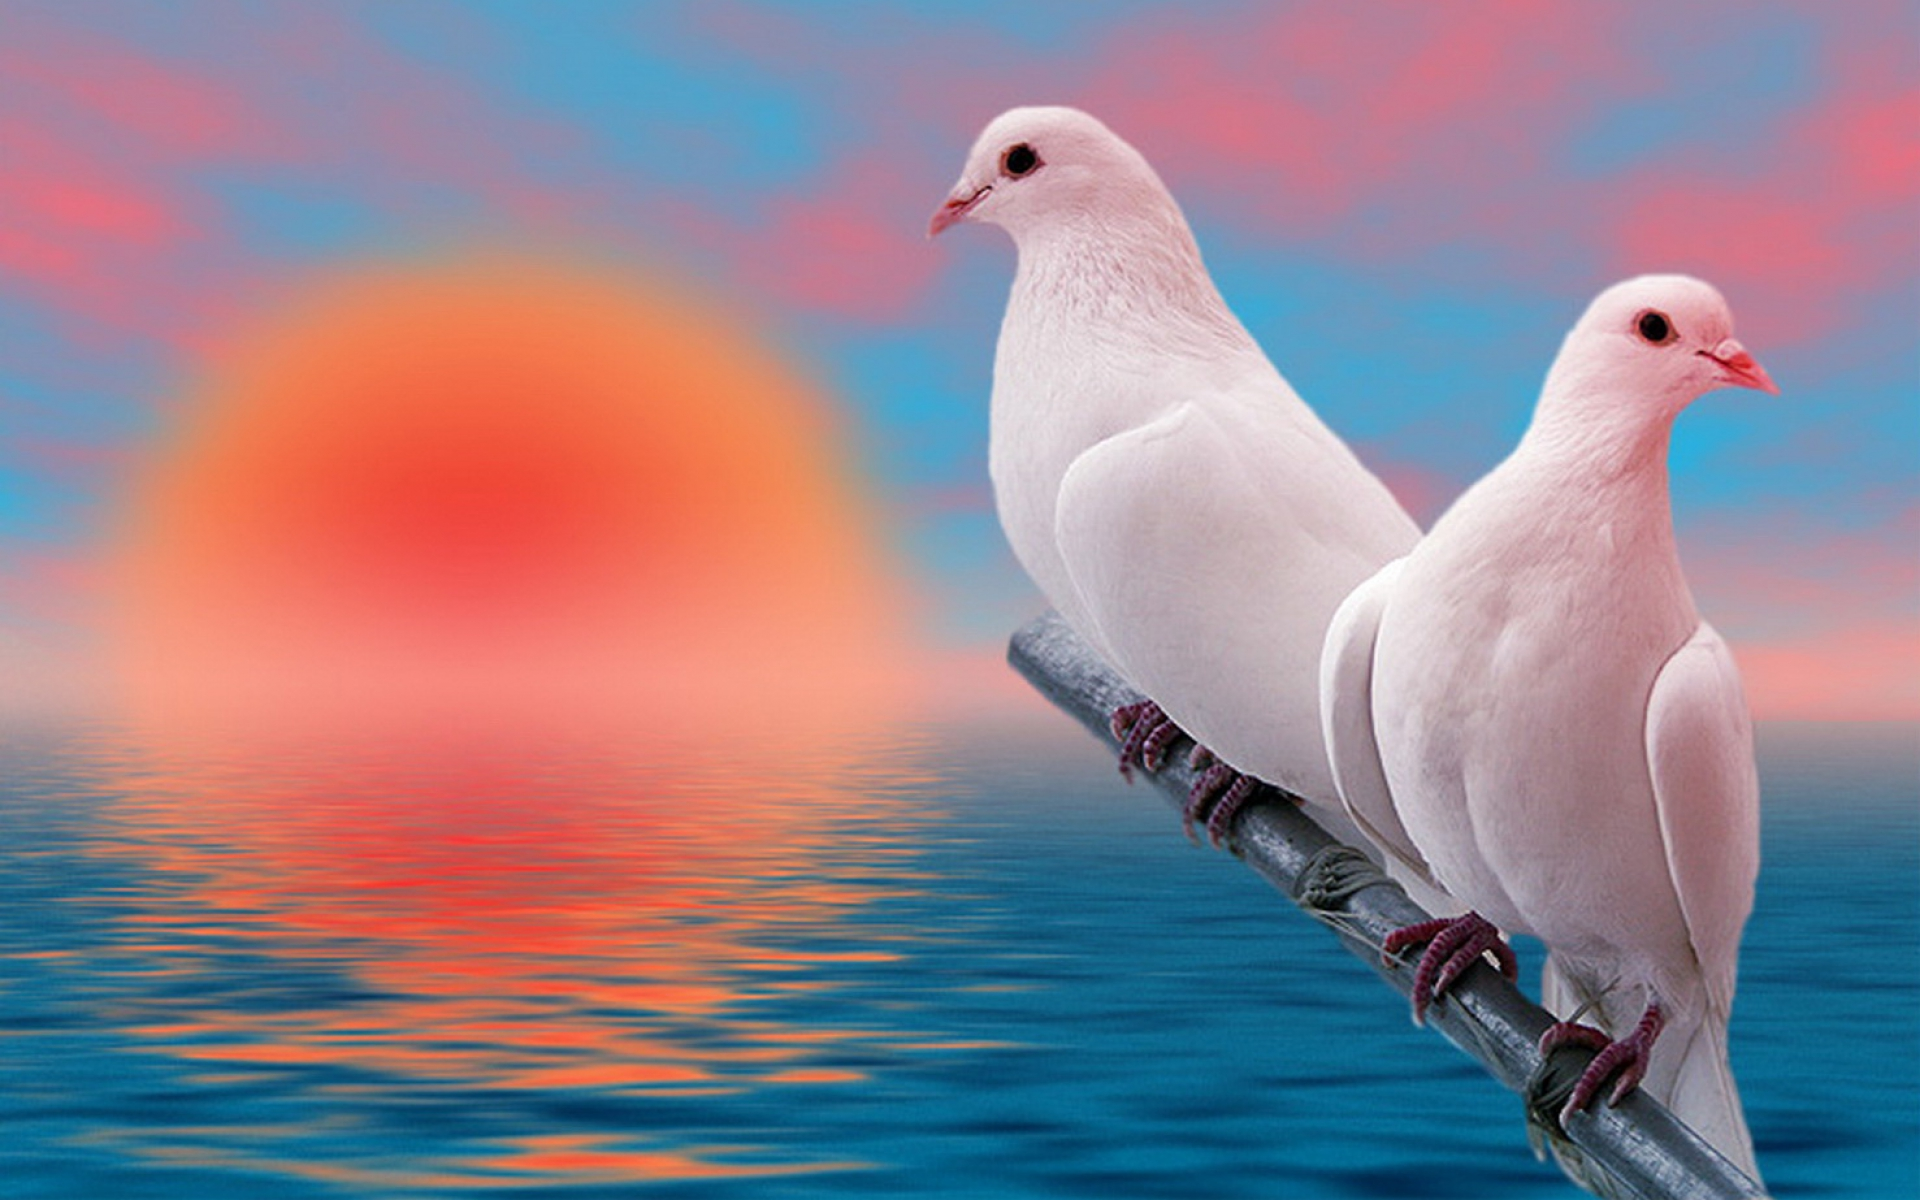 free photo dove bird pigeon wild nature free download jooinn